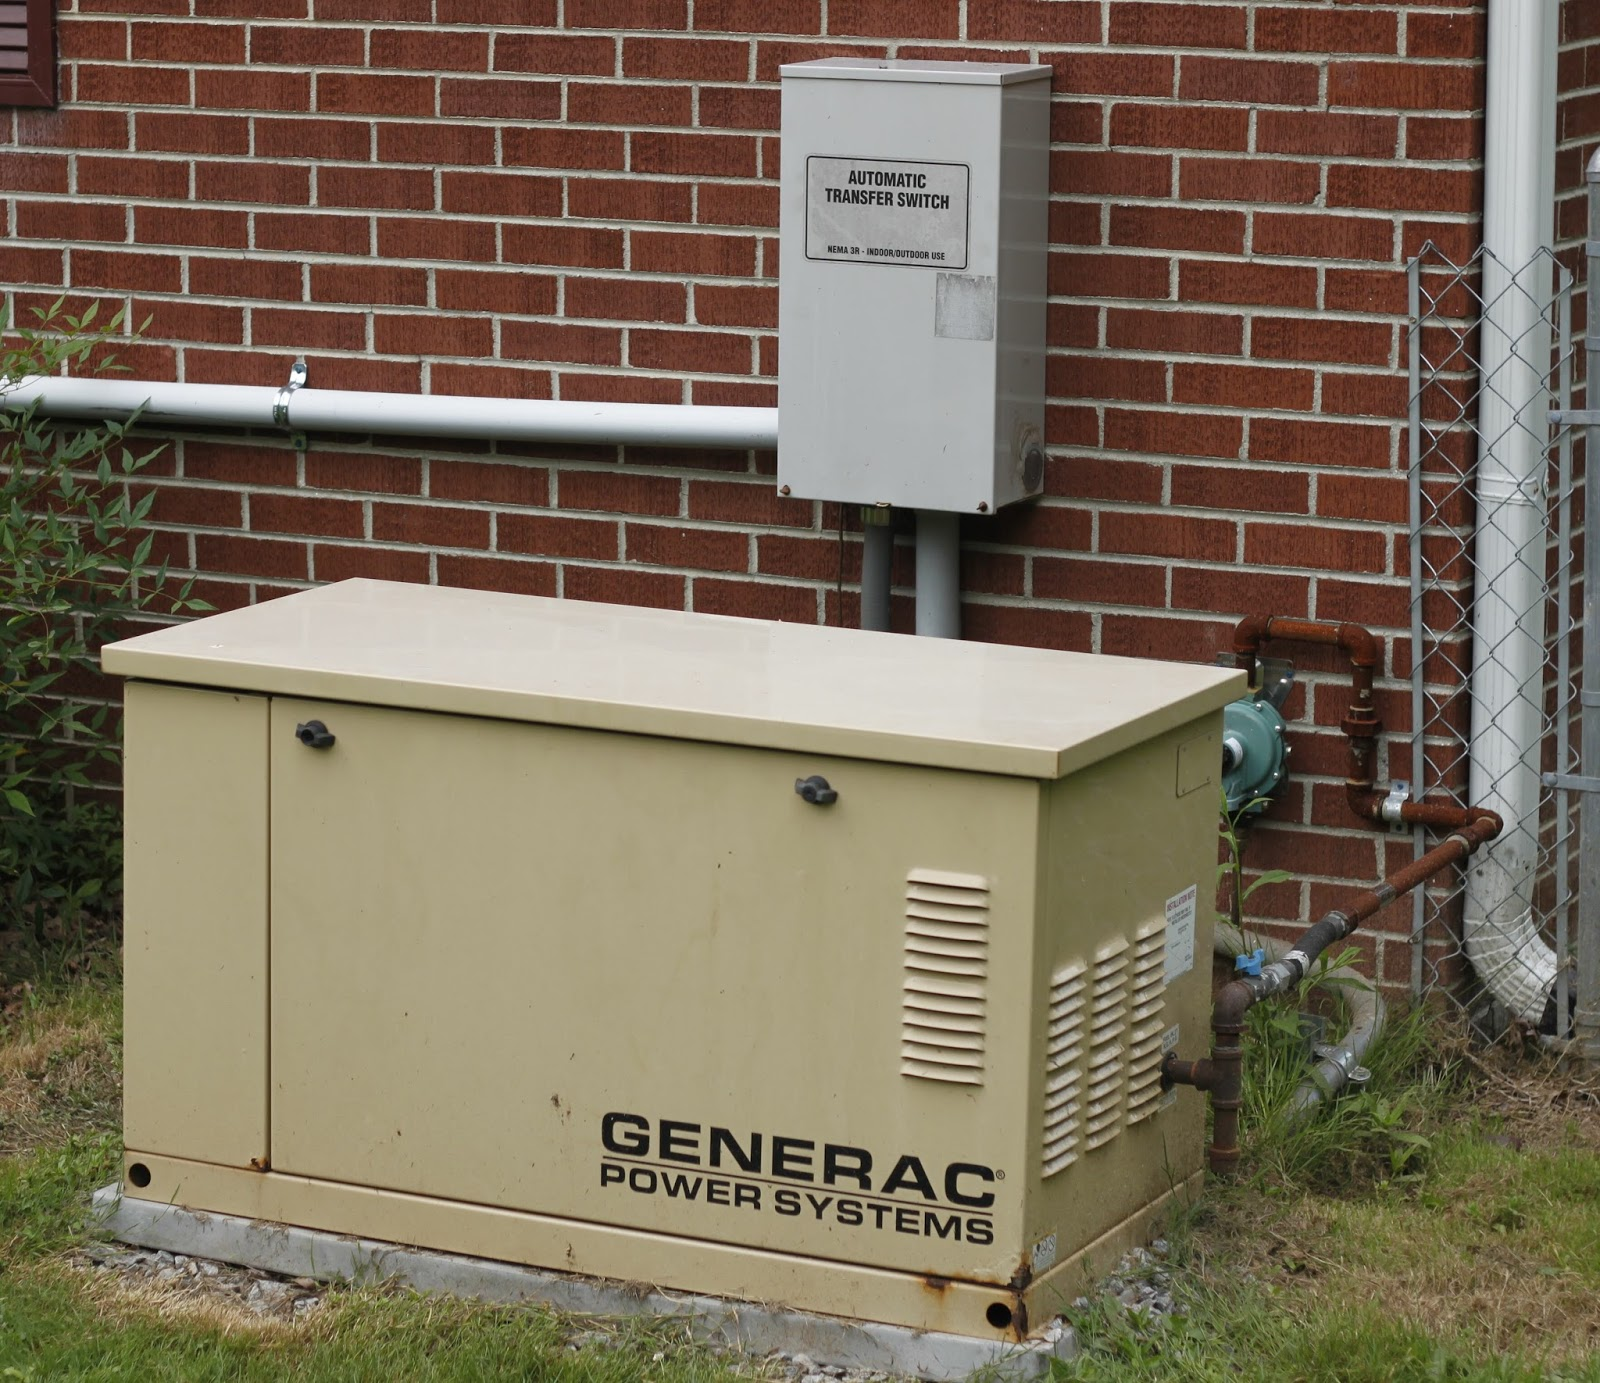 medium resolution of  that battery charger issues seem to be common with generac generators not to pick on generac this may be a common issue i found a system schematic